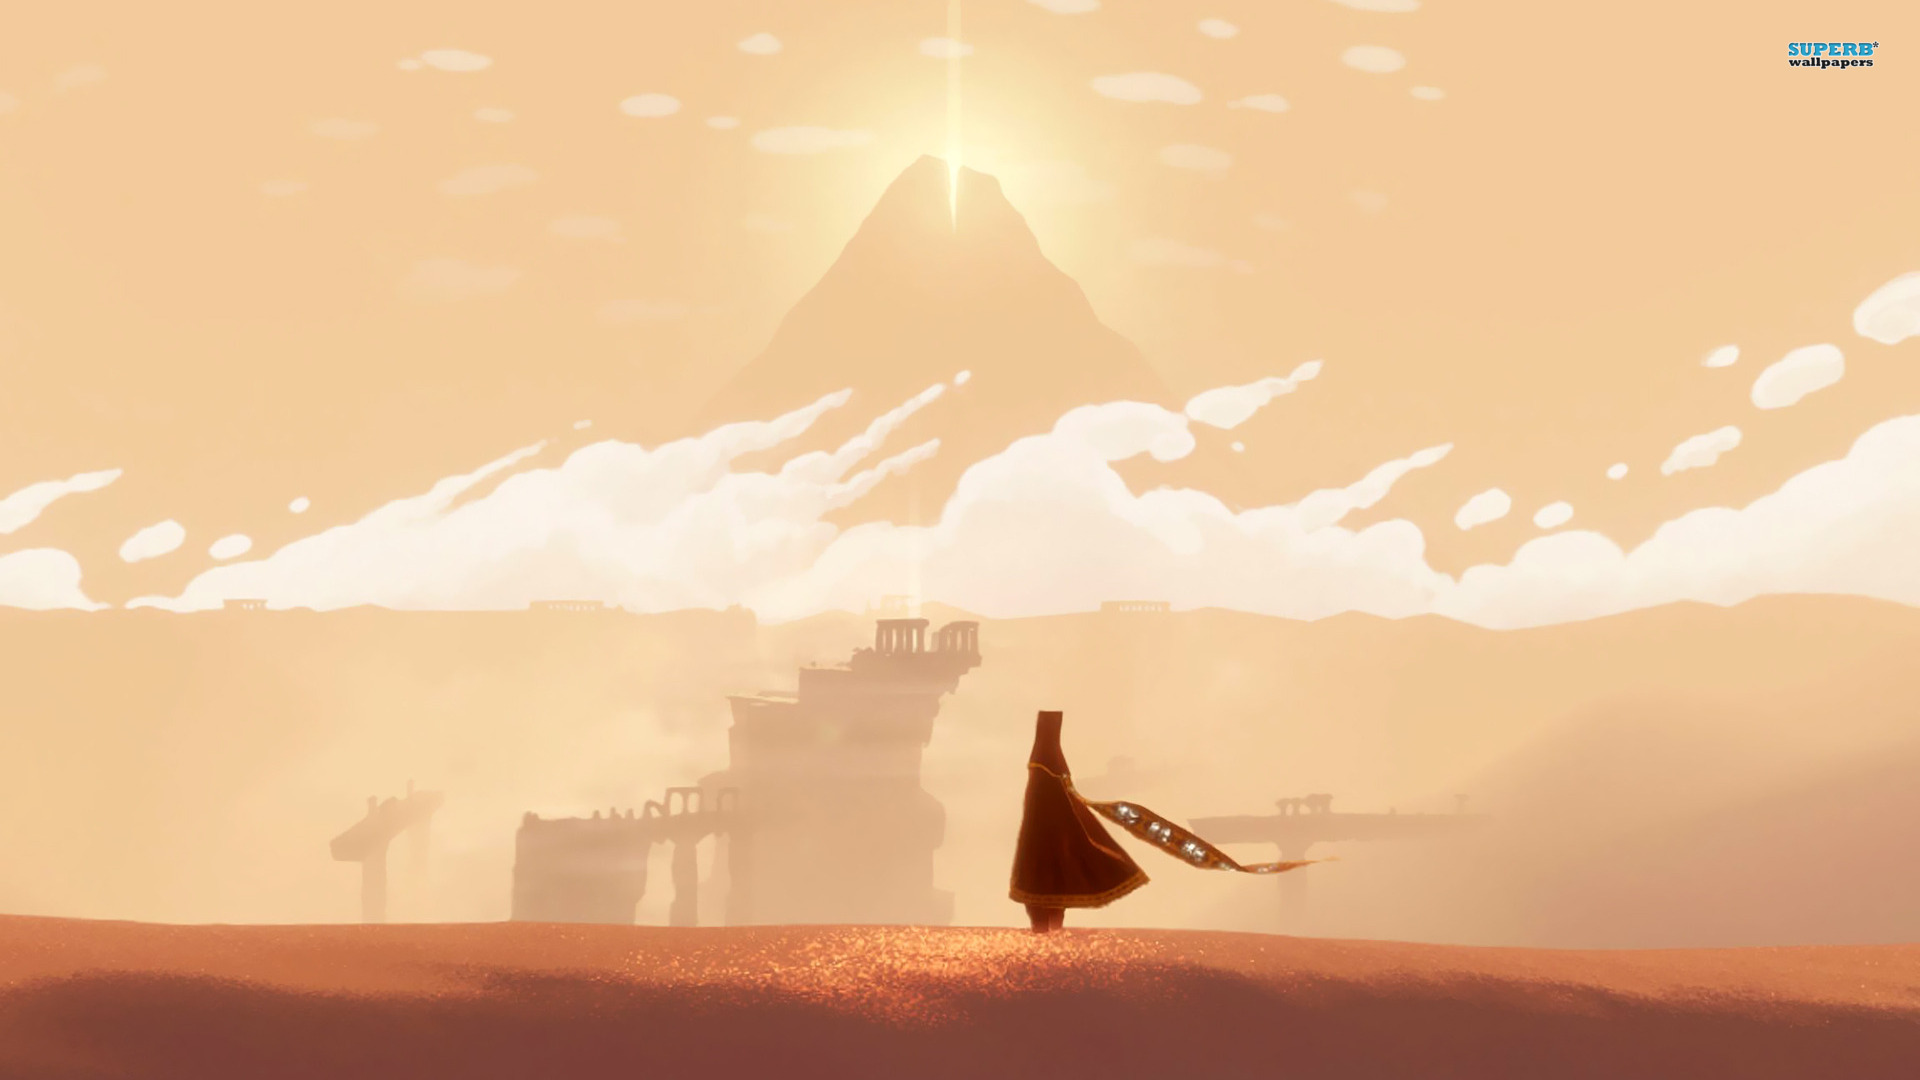 1000+ images about Journey on Pinterest | Game